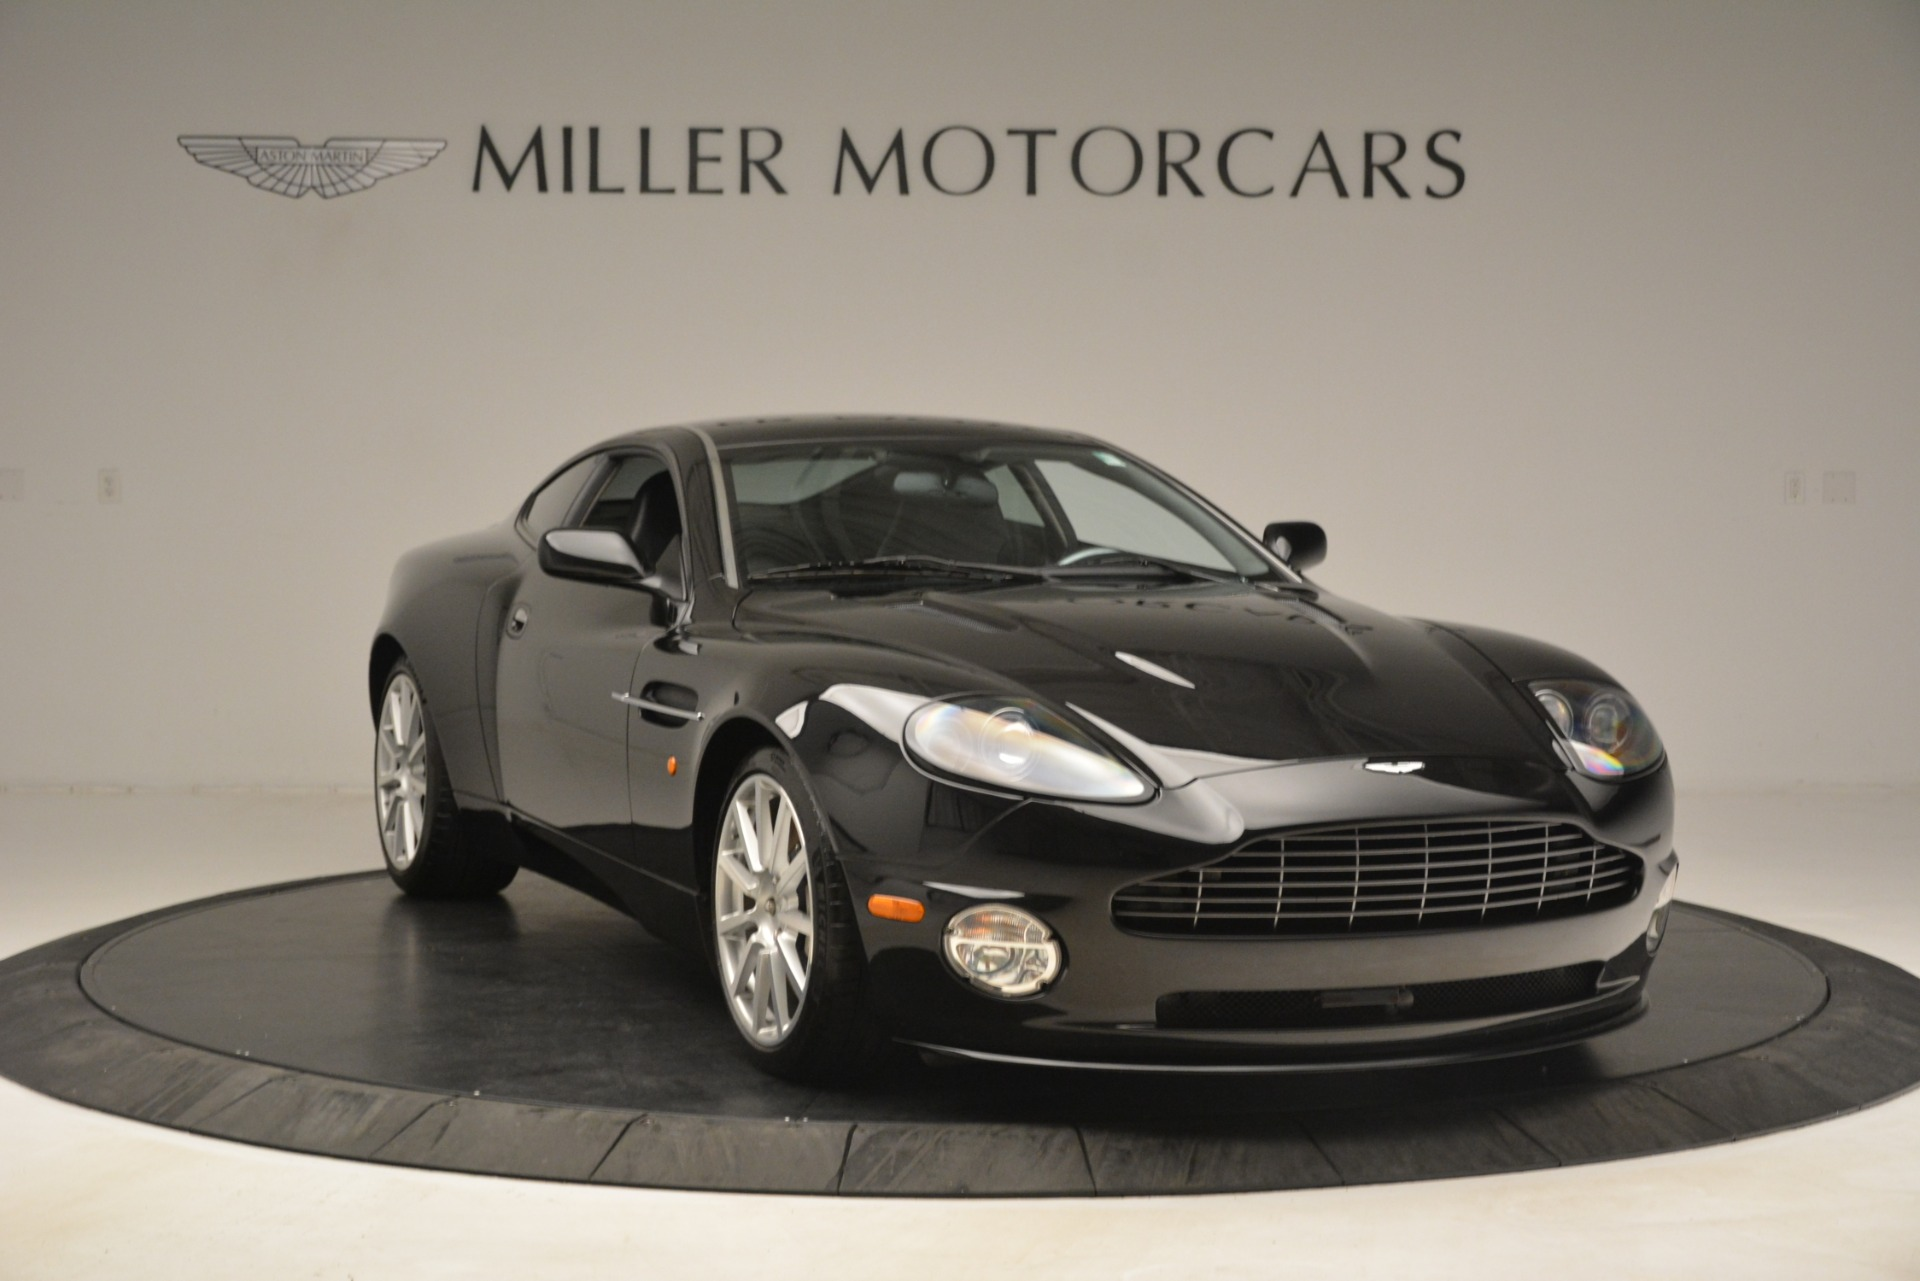 Used 2005 Aston Martin V12 Vanquish S For Sale In Westport, CT 3218_p11